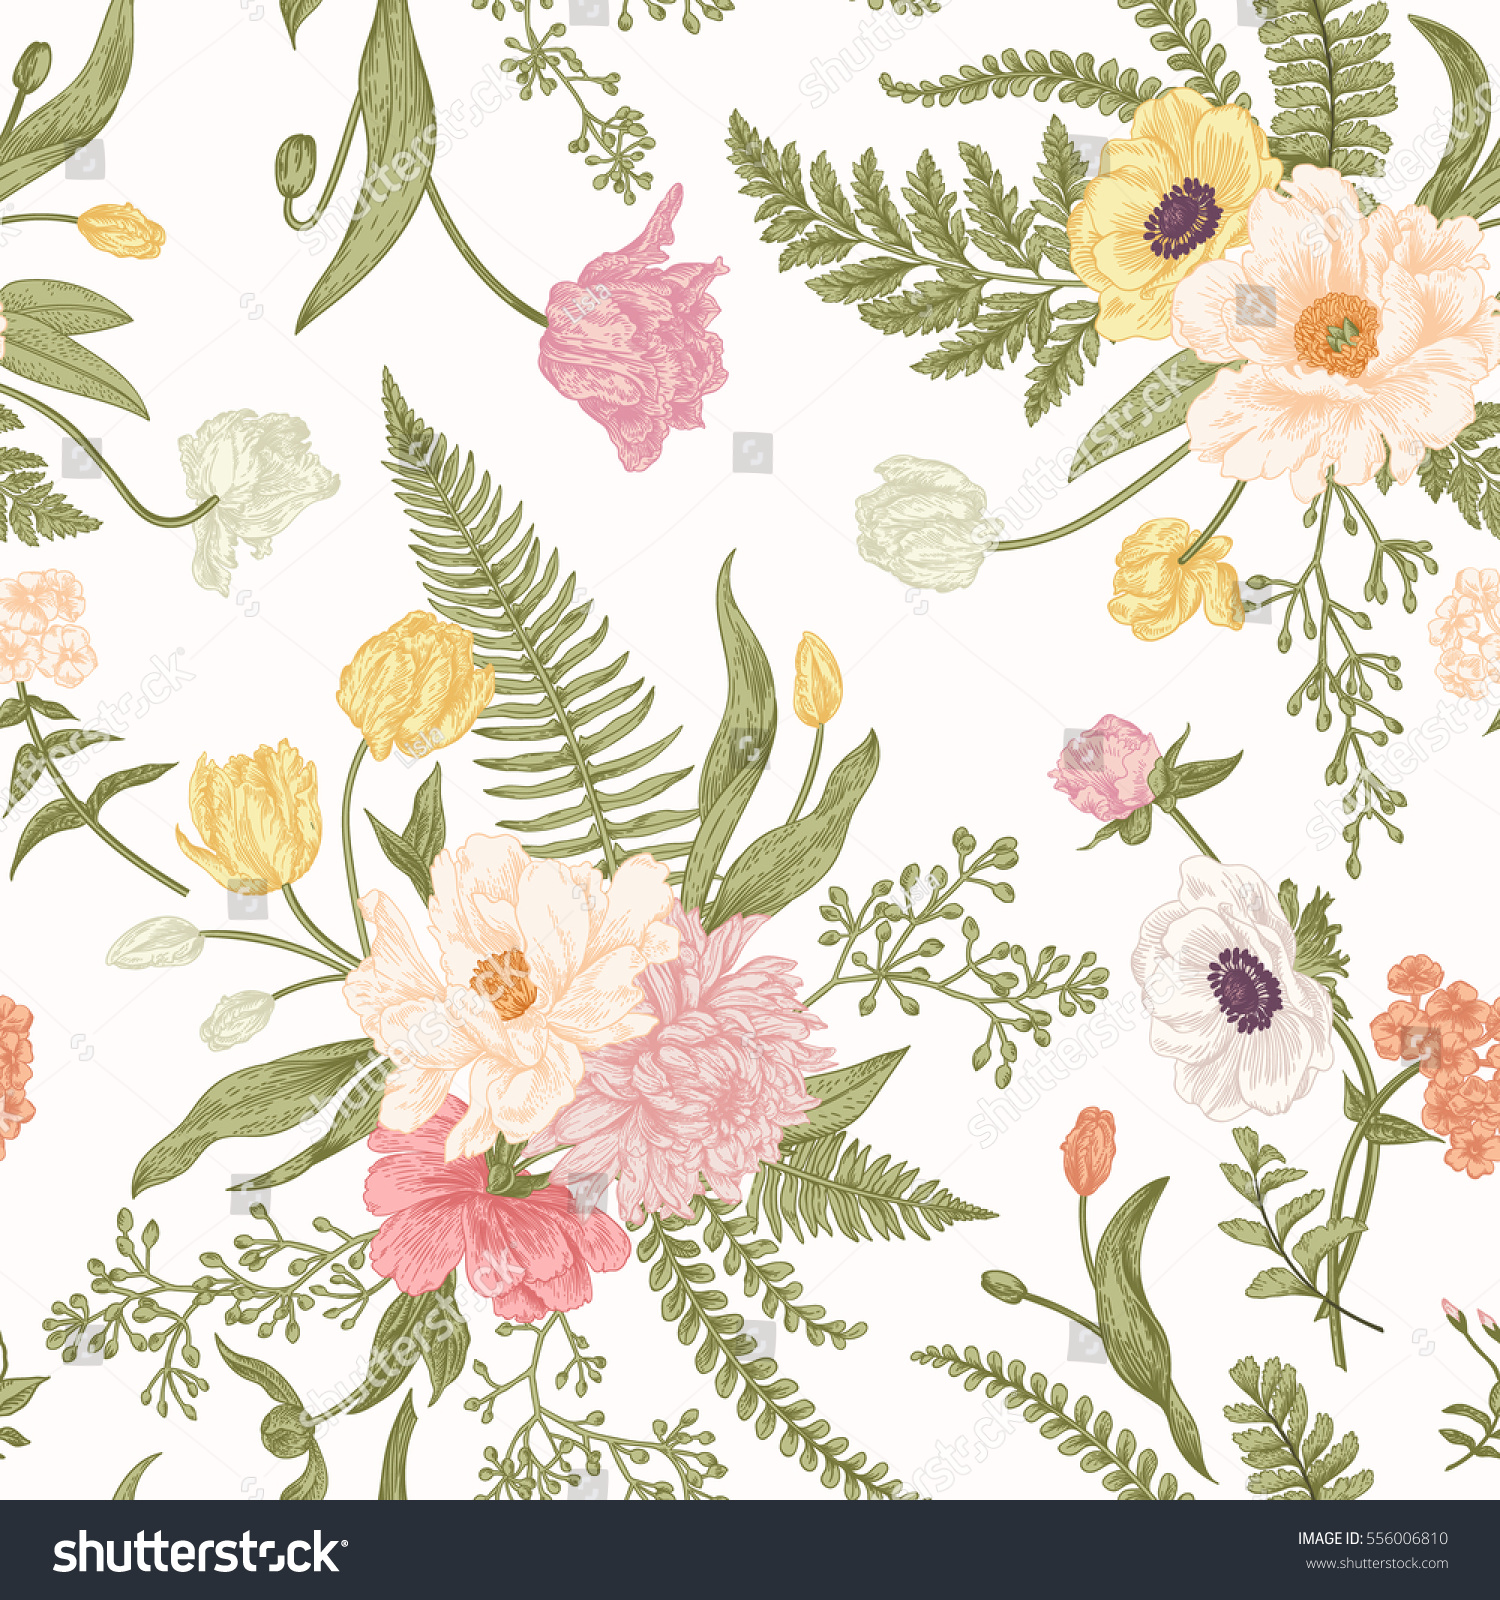 Seamless Floral Pattern Bouquets Spring Flowers Stock Image